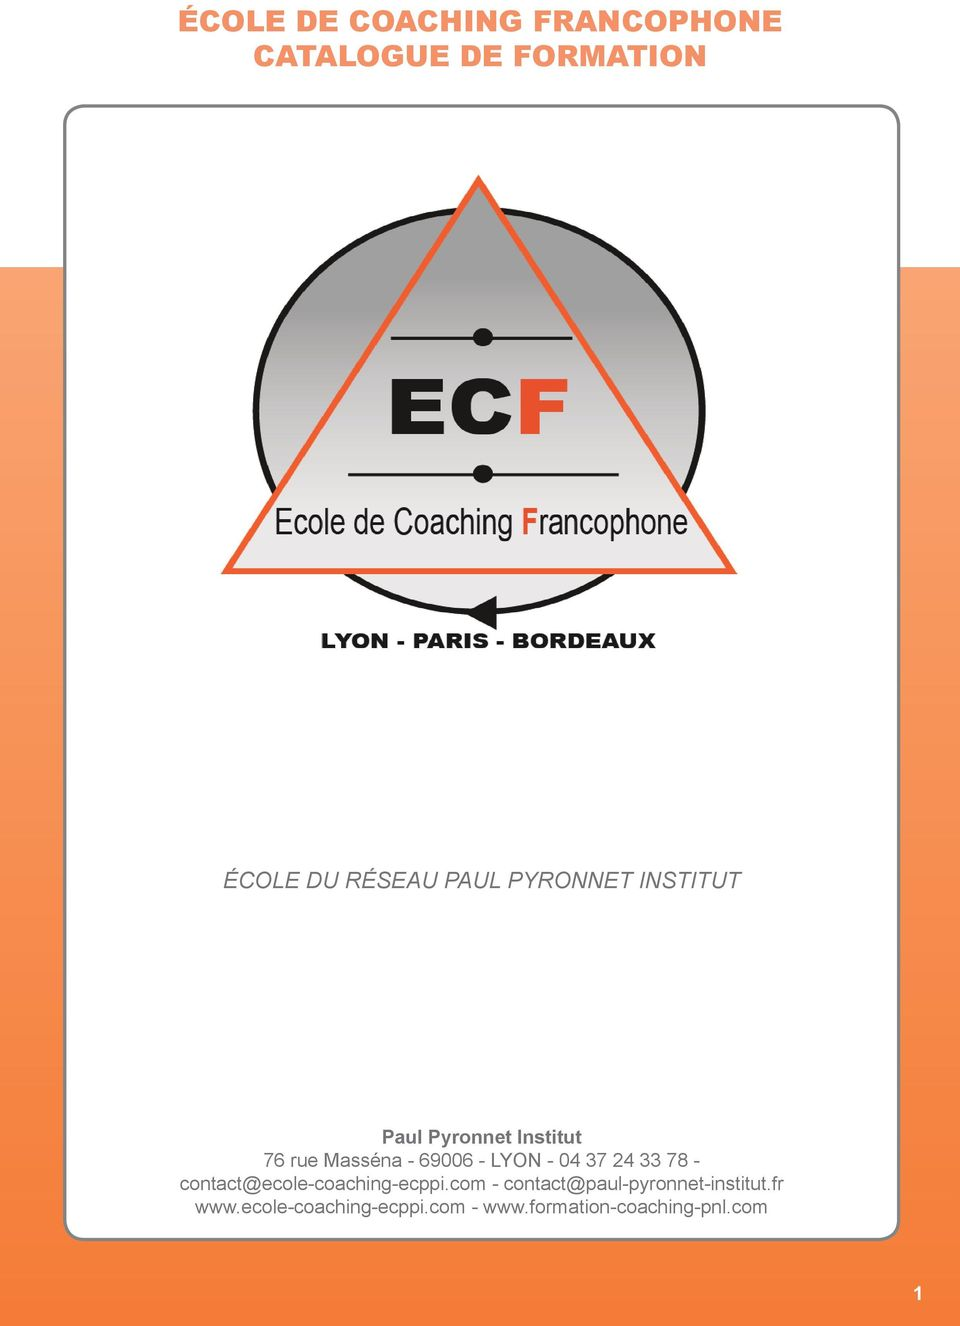 contact@ecole-coaching-ecppi.